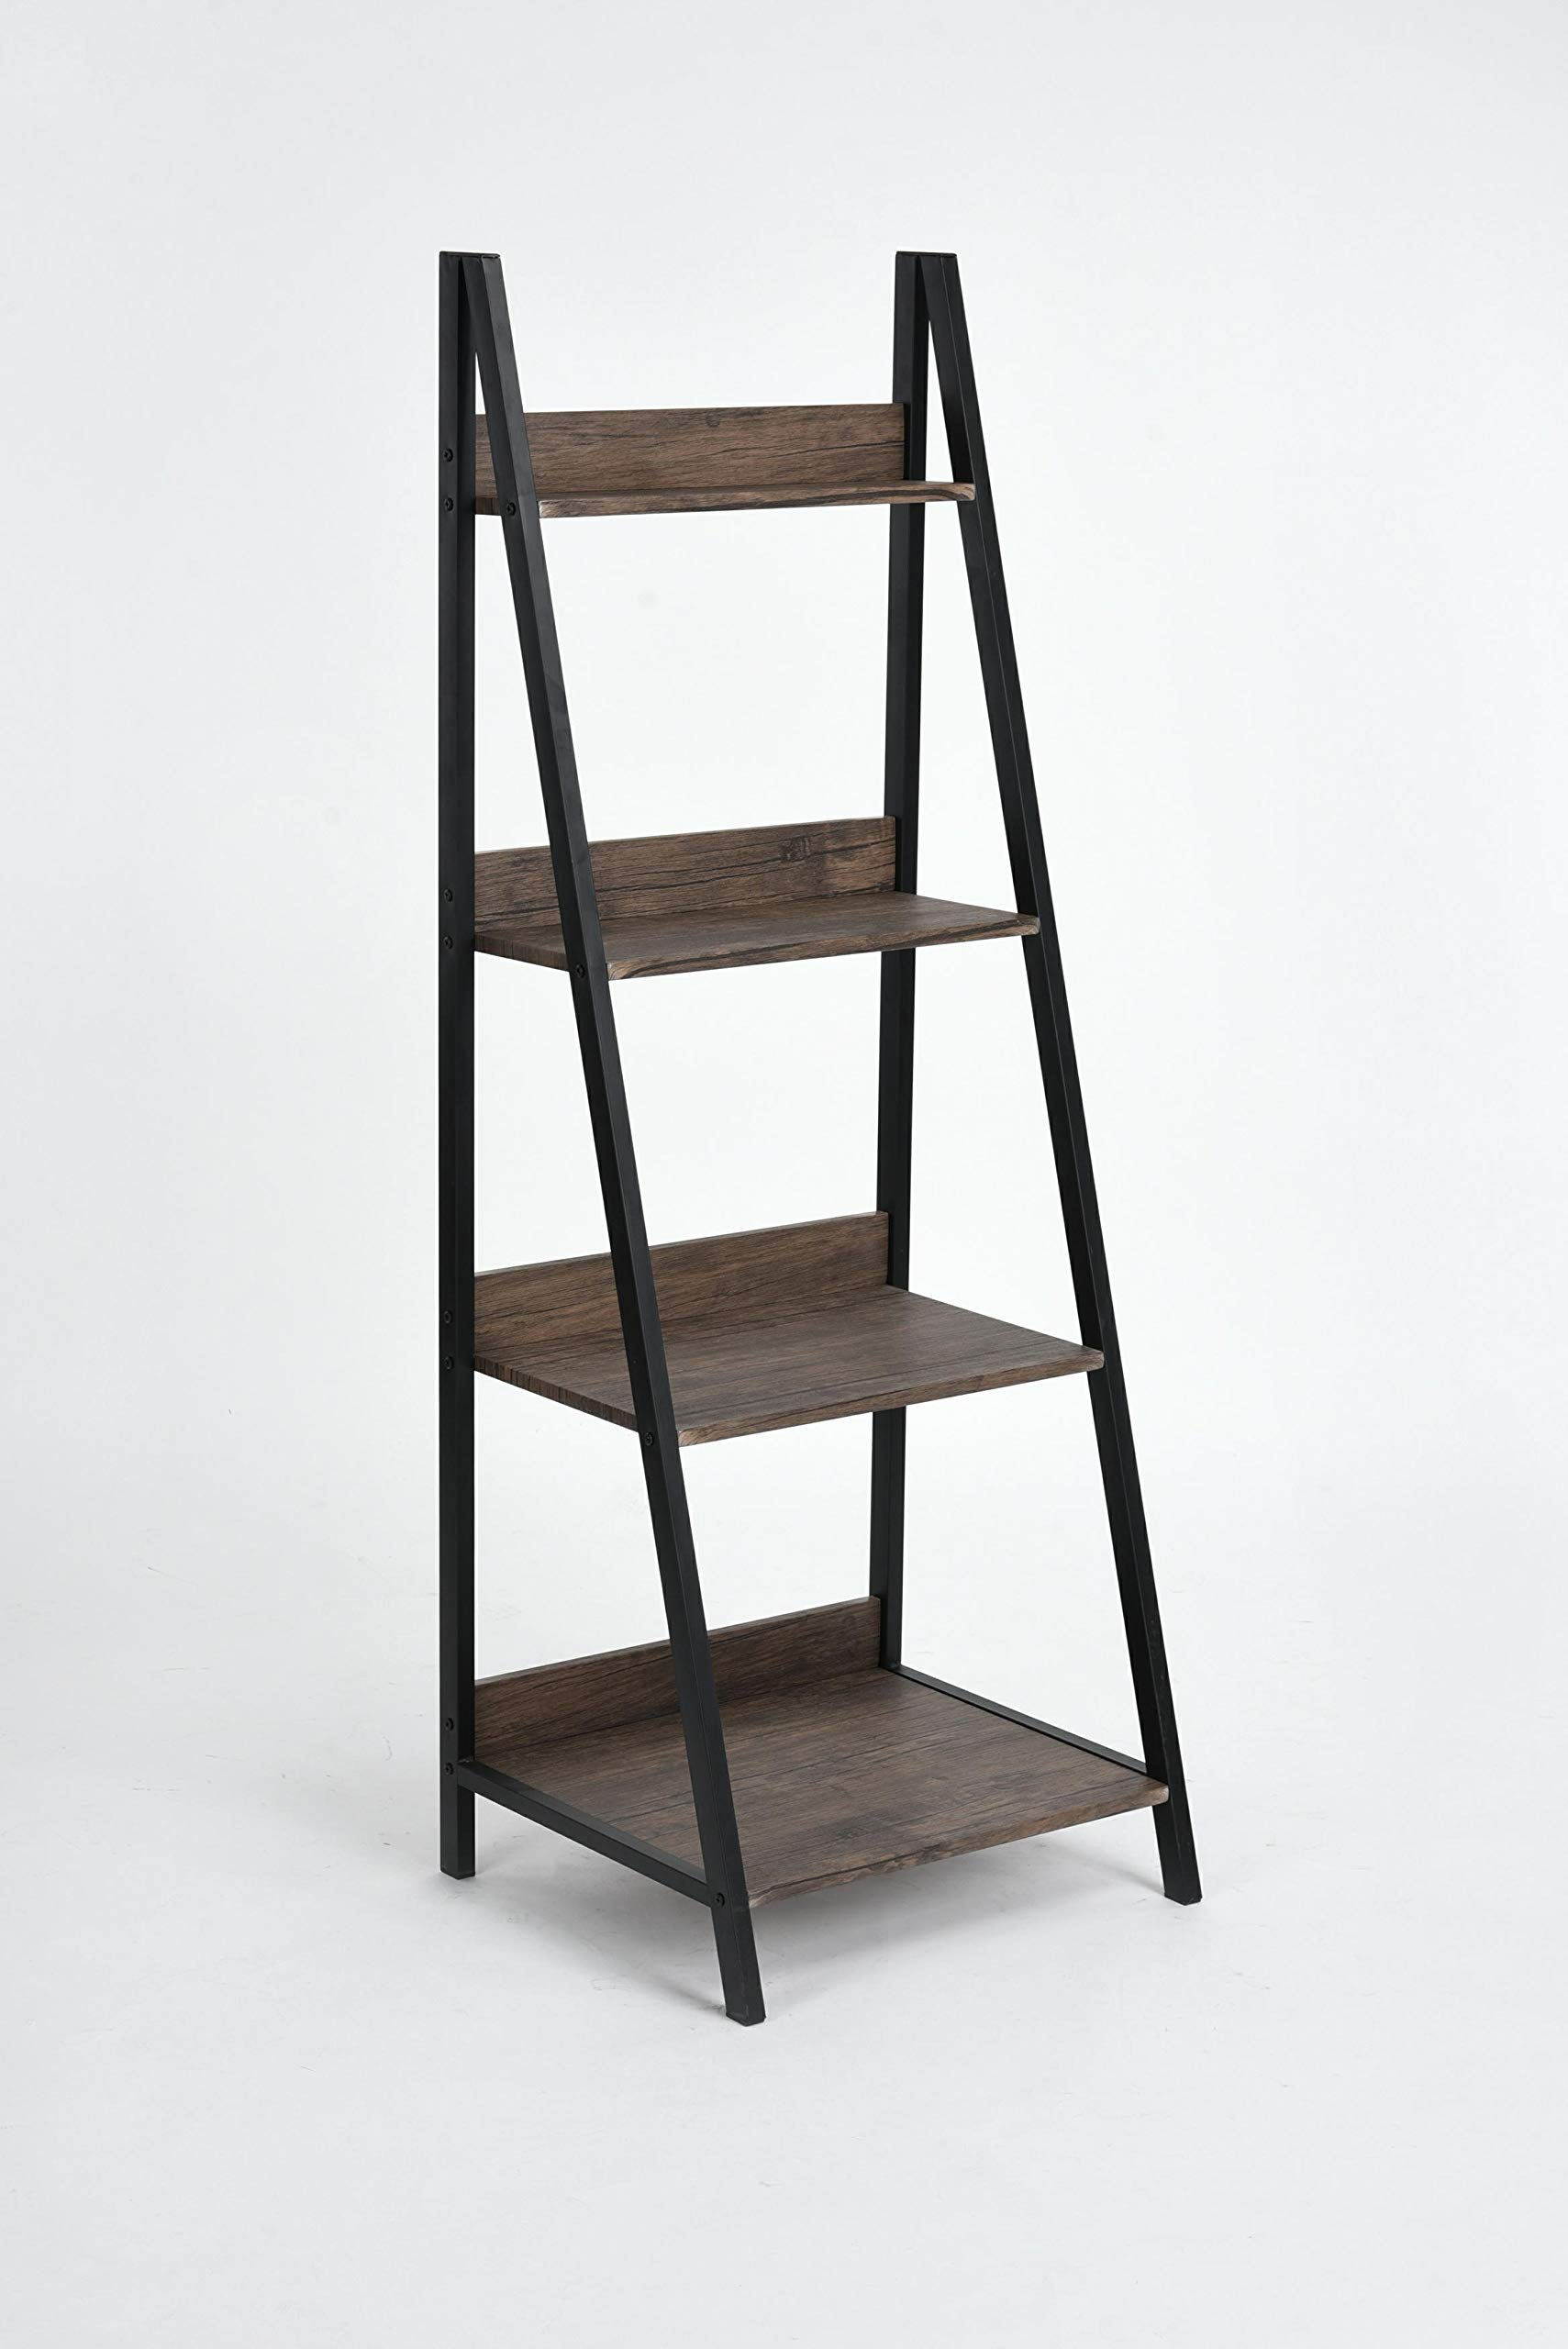 None Vintage Dark Brown Finish 4-Tier Shelves Leaning Ladder Bookcase Bookshelf Display Planter by None